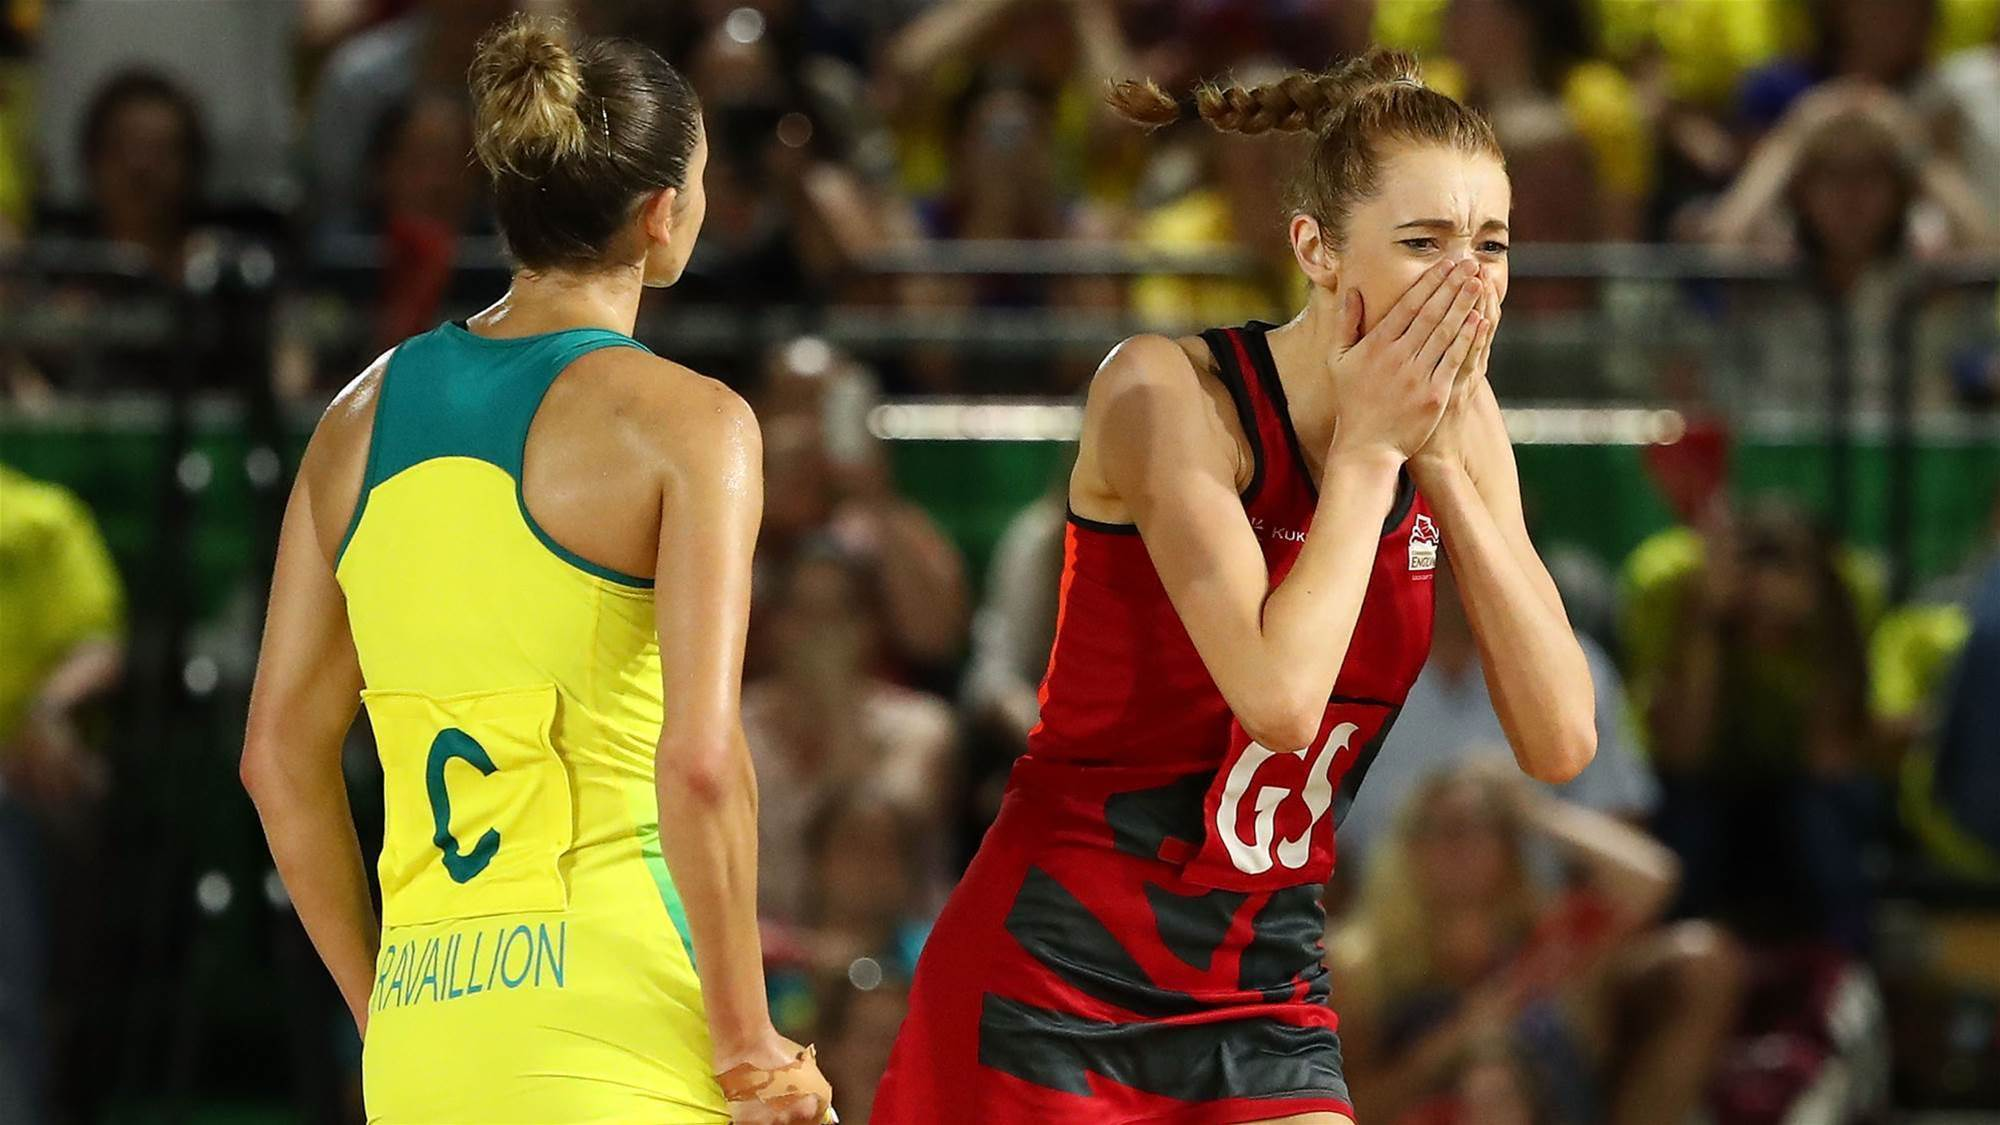 GALLERY| Commonwealth Games Day 11